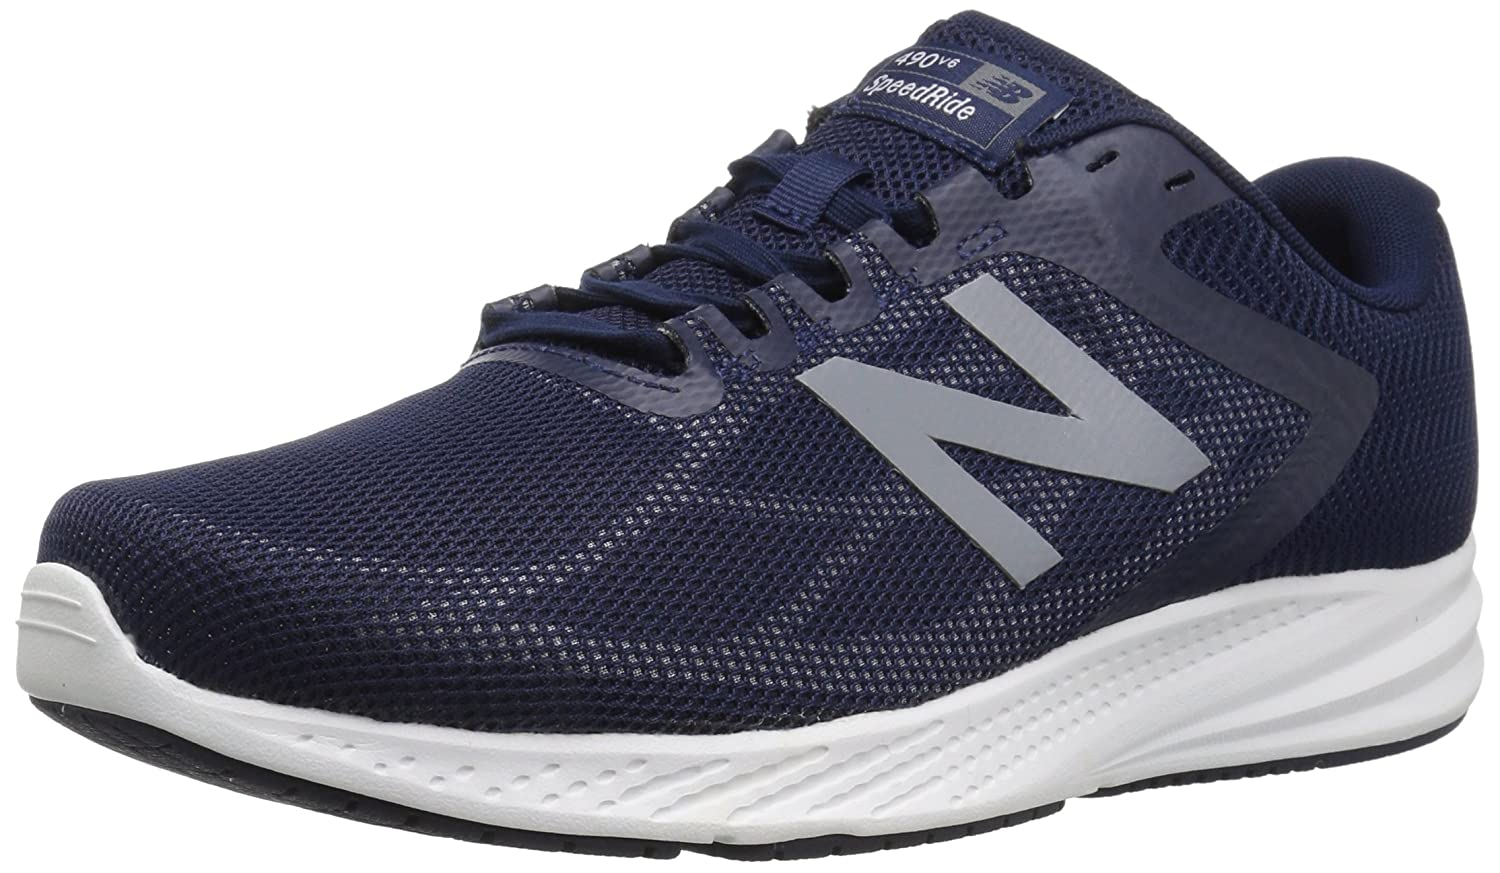 New Balance Men's 490v6 Cushioning Running Shoe B075R7CFJ2 8 XW US|Navy